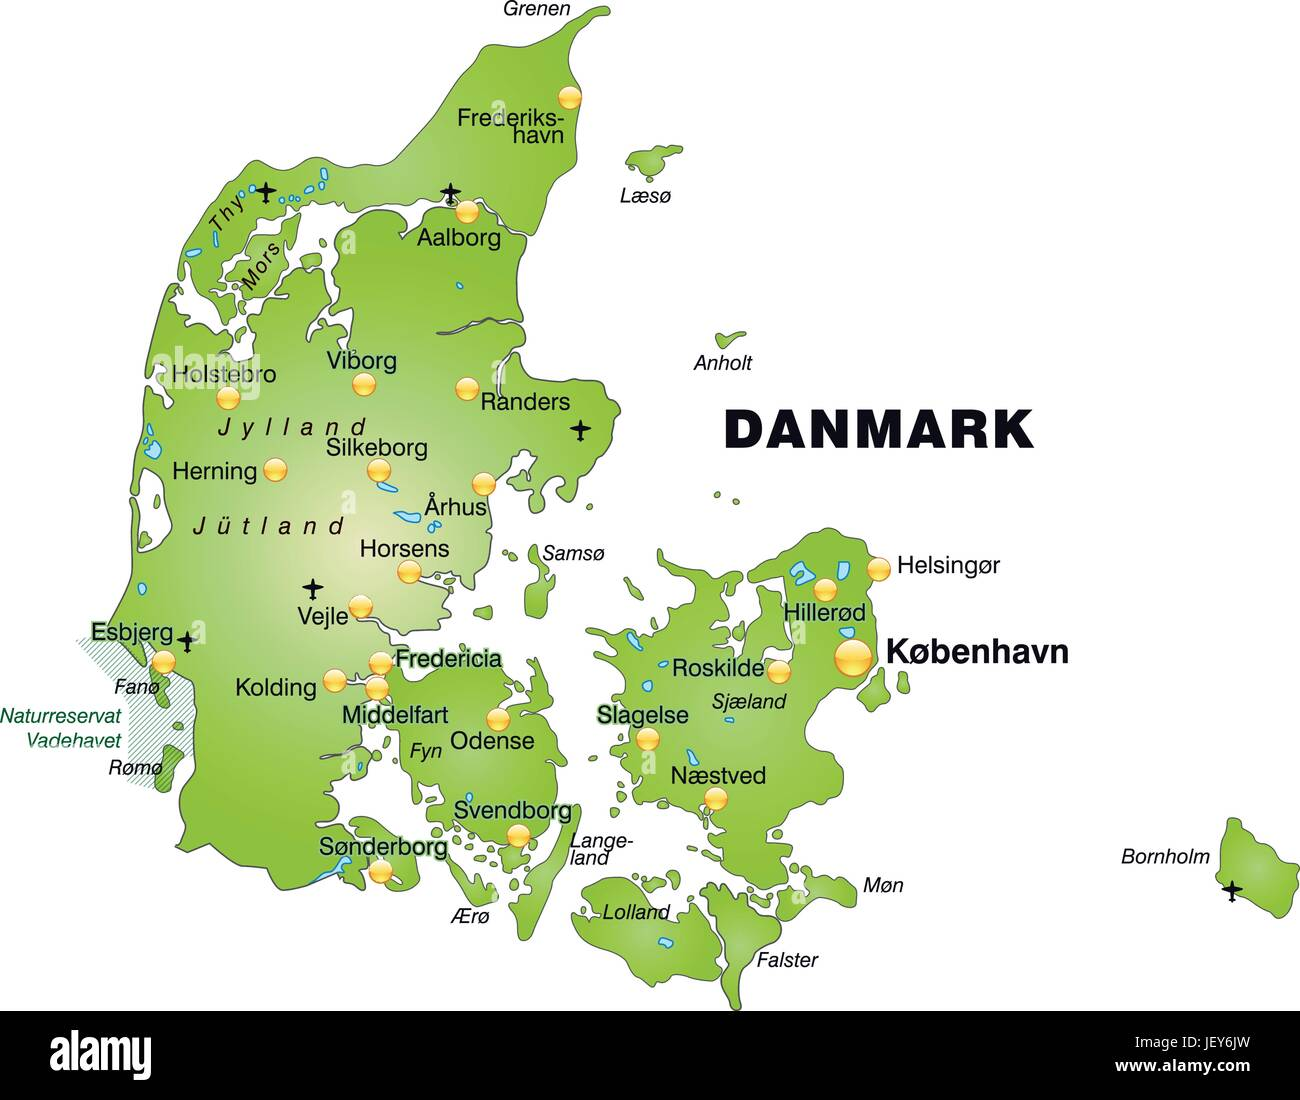 Denmark card outline borders atlas map of the world map stock denmark card outline borders atlas map of the world map dnemarkkarte gumiabroncs Choice Image